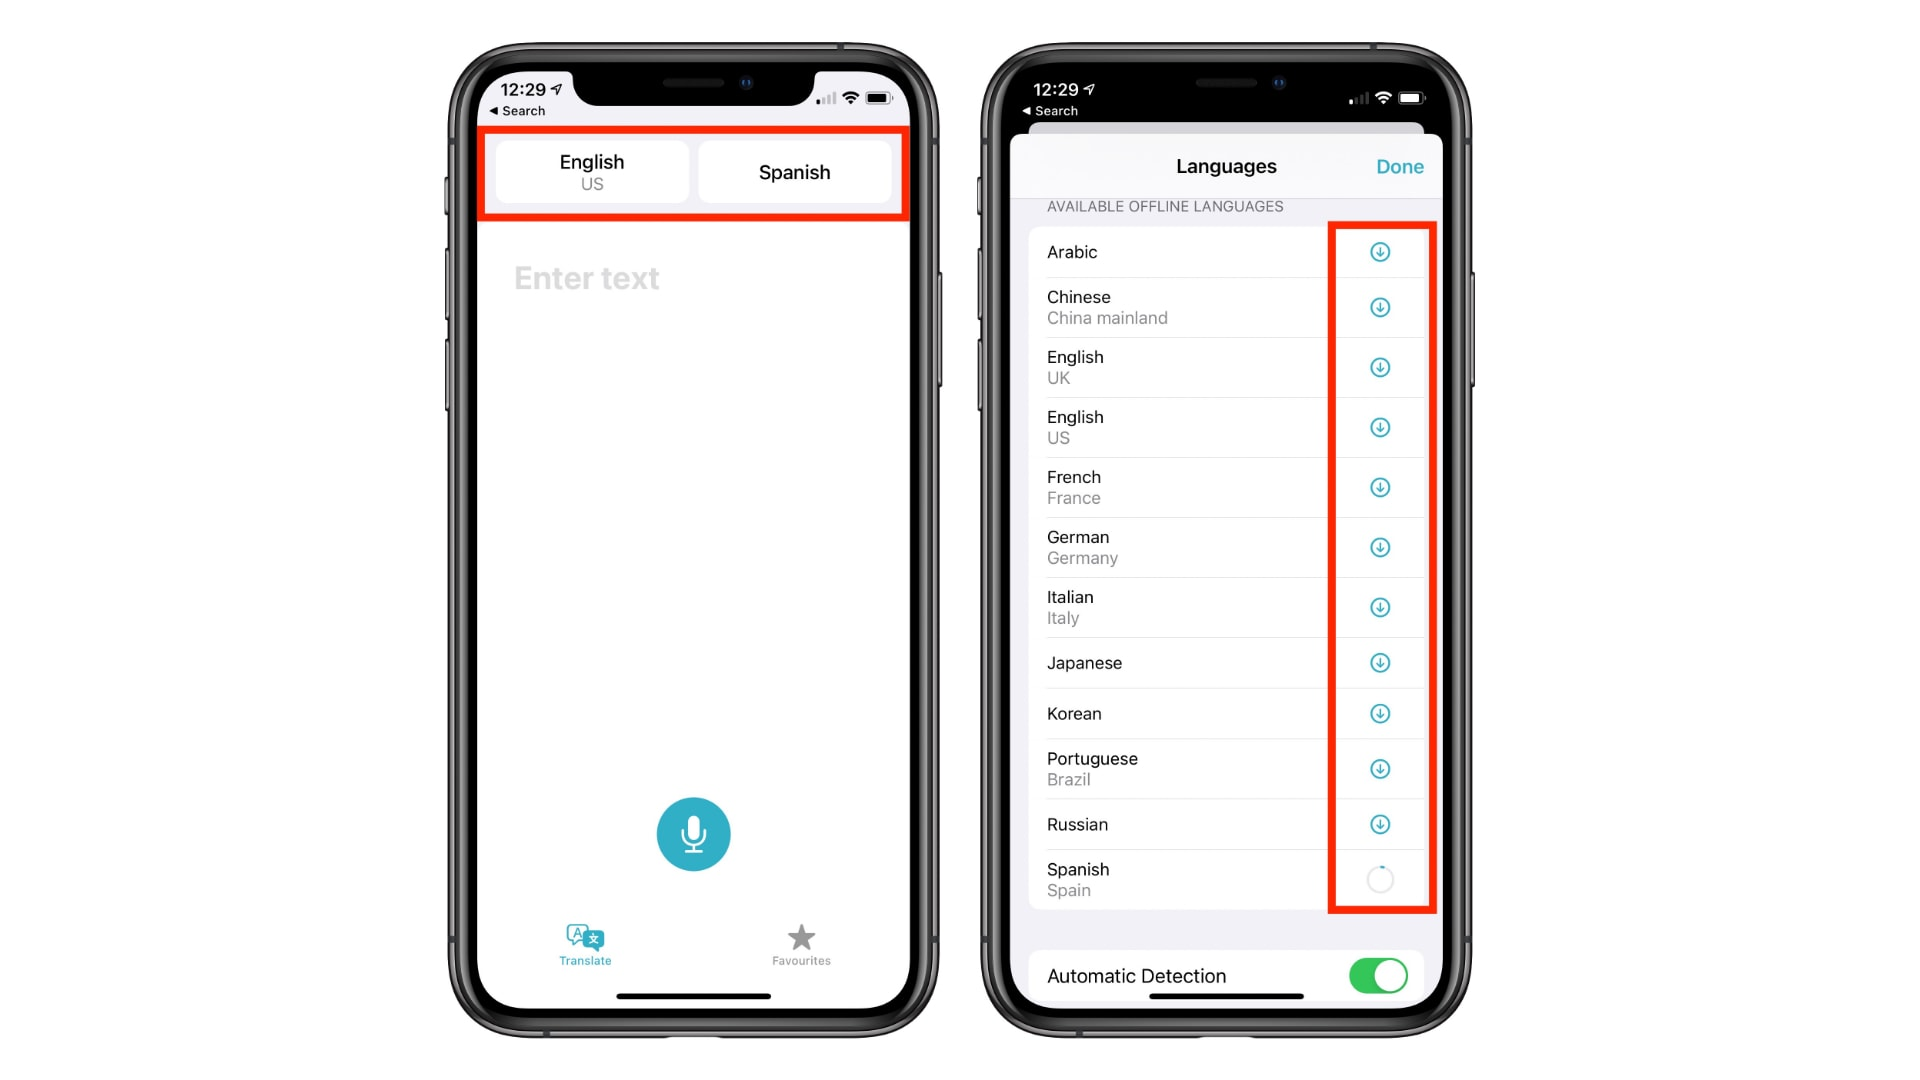 Download languages to use the new translation app for iOS 14 offline